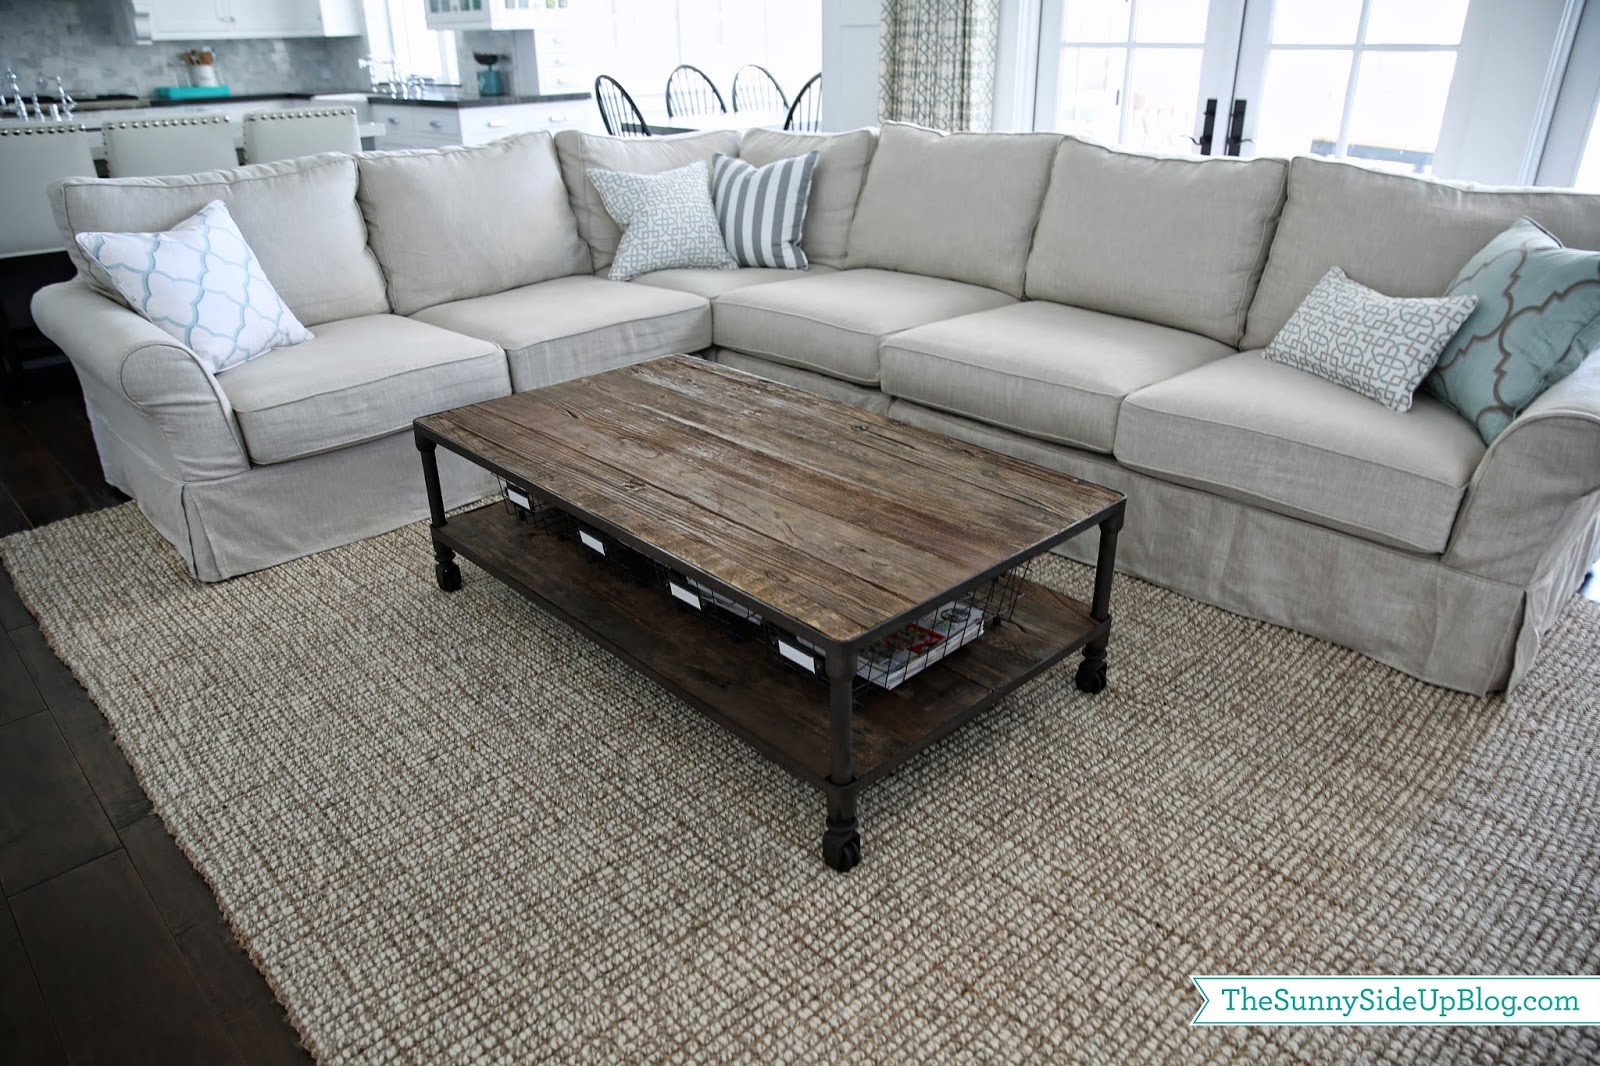 Coffee table baskets choice image coffee table design ideas Coffee table baskets